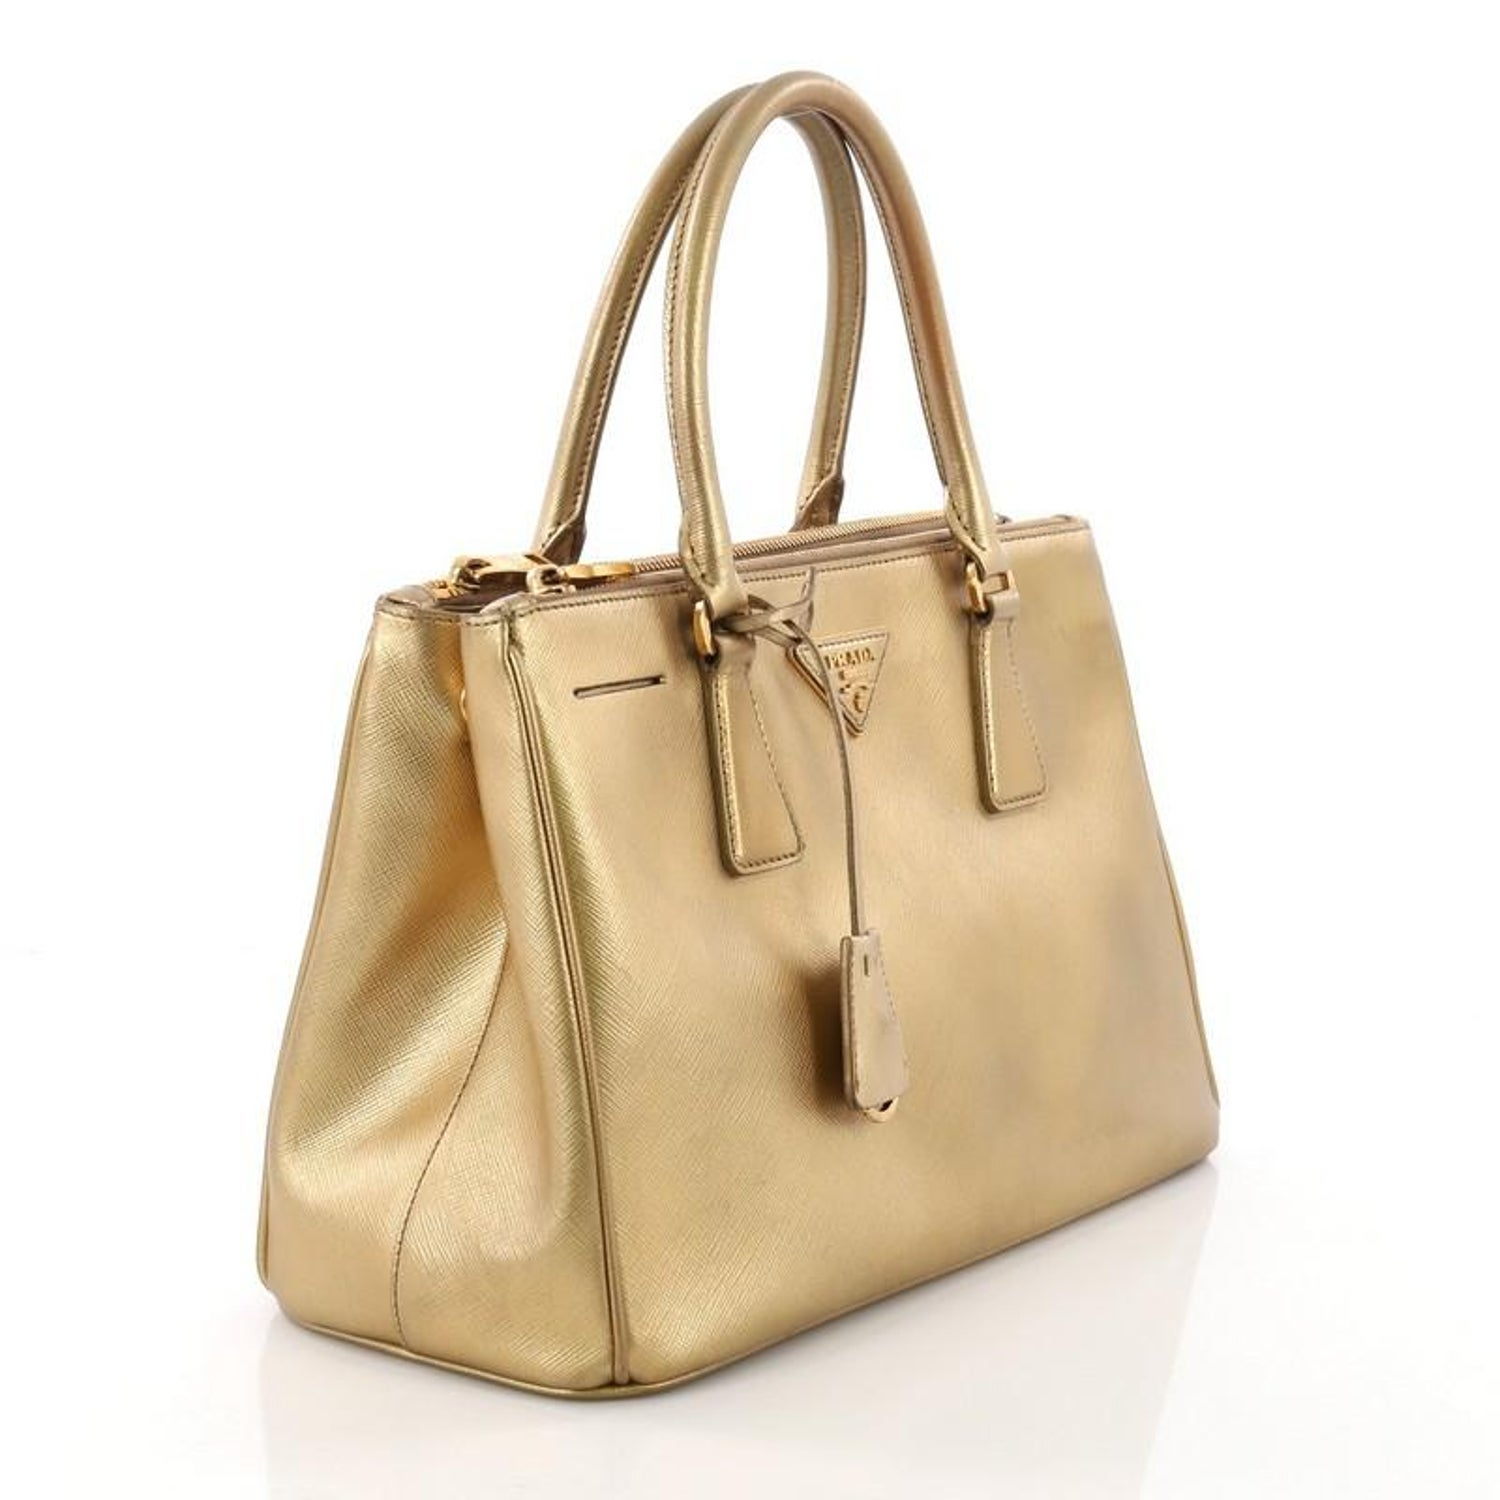 Prada Double Zip Lux Tote Saffiano Leather Small For Sale at 1stdibs c4e46b0d63497